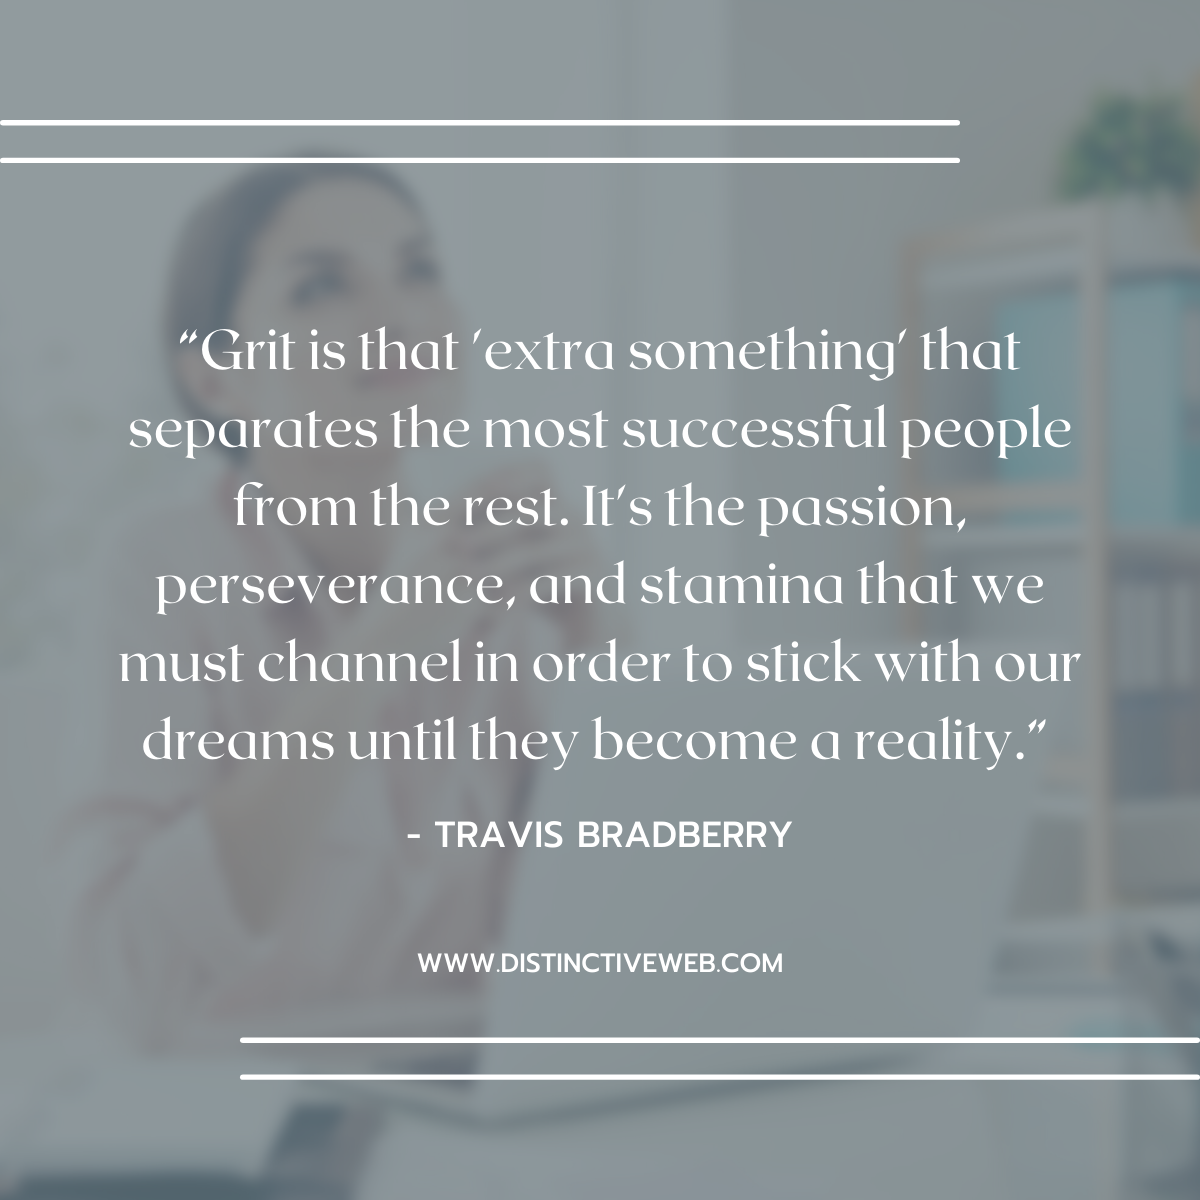 """""""Grit is that 'extra something' that separates the most successful people from the rest. It's the passion, perseverance, and stamina that we must channel in order to stick with our dreams until they become a reality."""" -- Travis Bradberry"""